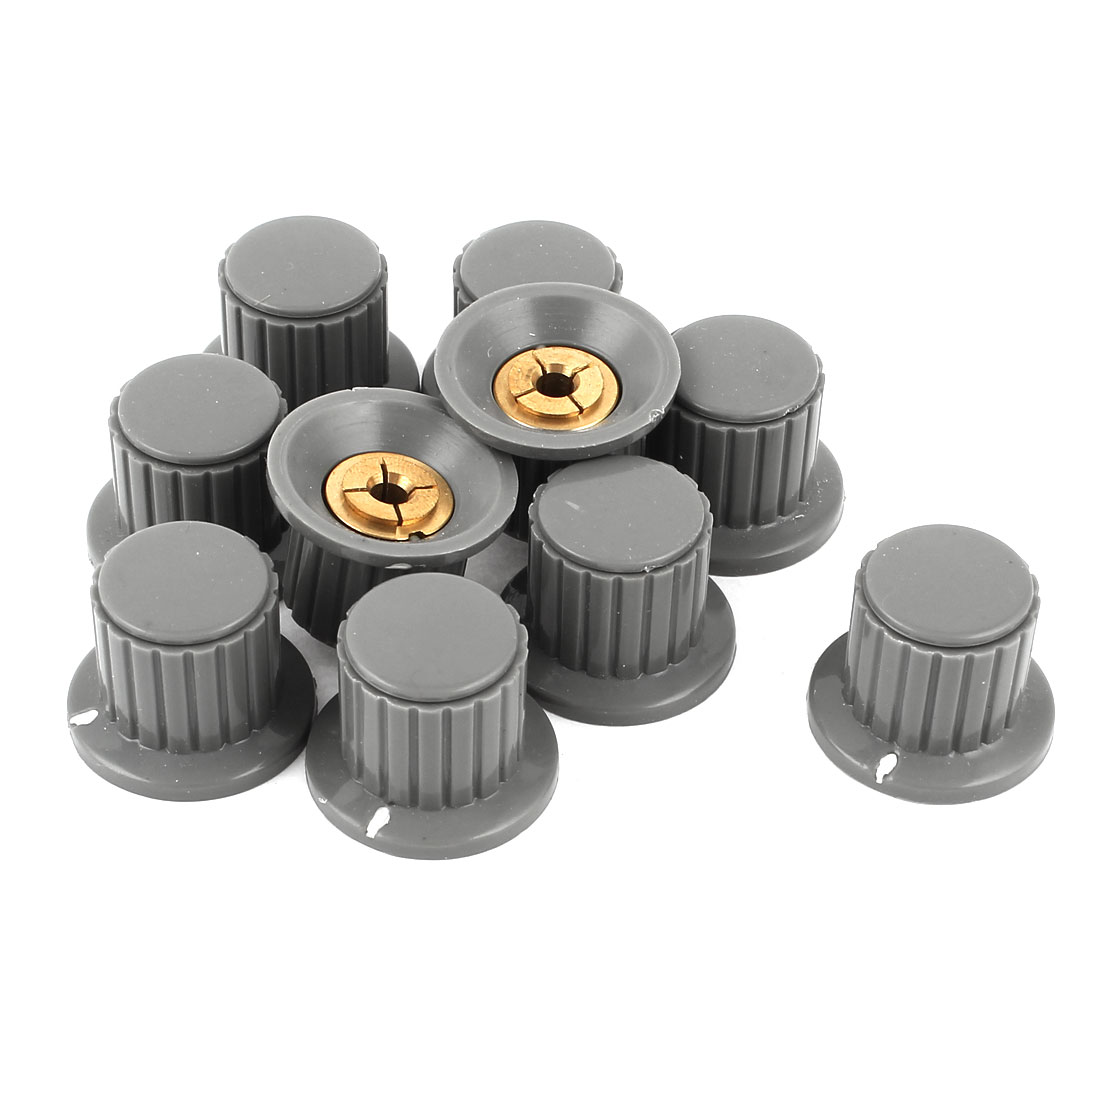 "10pcs 1/6"" Shaft Insert Dia Brass Tone Core Potentiometer Control Knobs Gray"